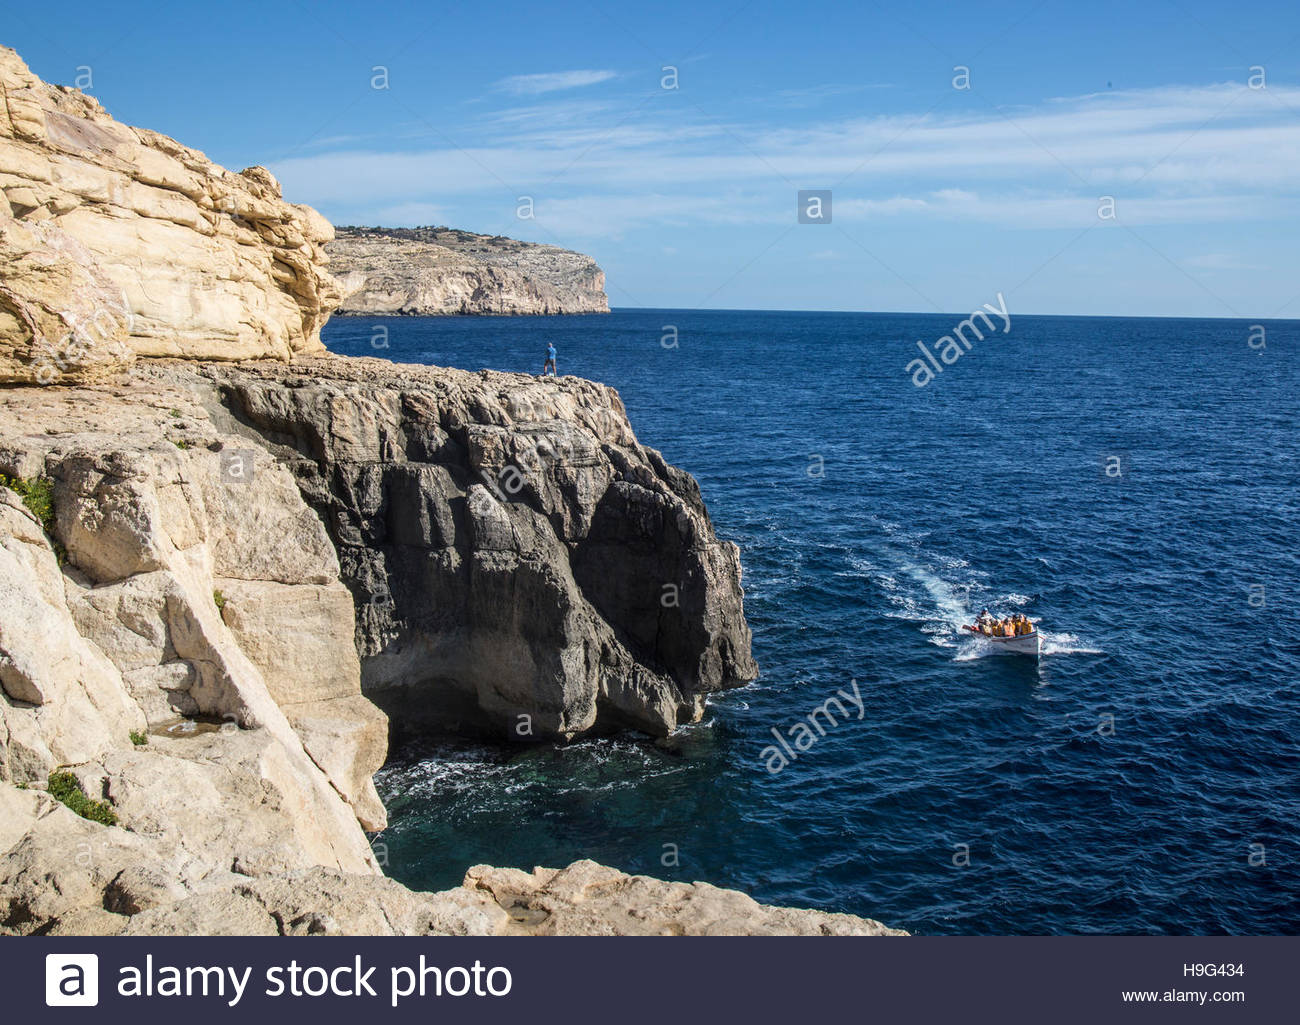 Boat with Blue Grotto sightseers returning to harbour. - Stock Image